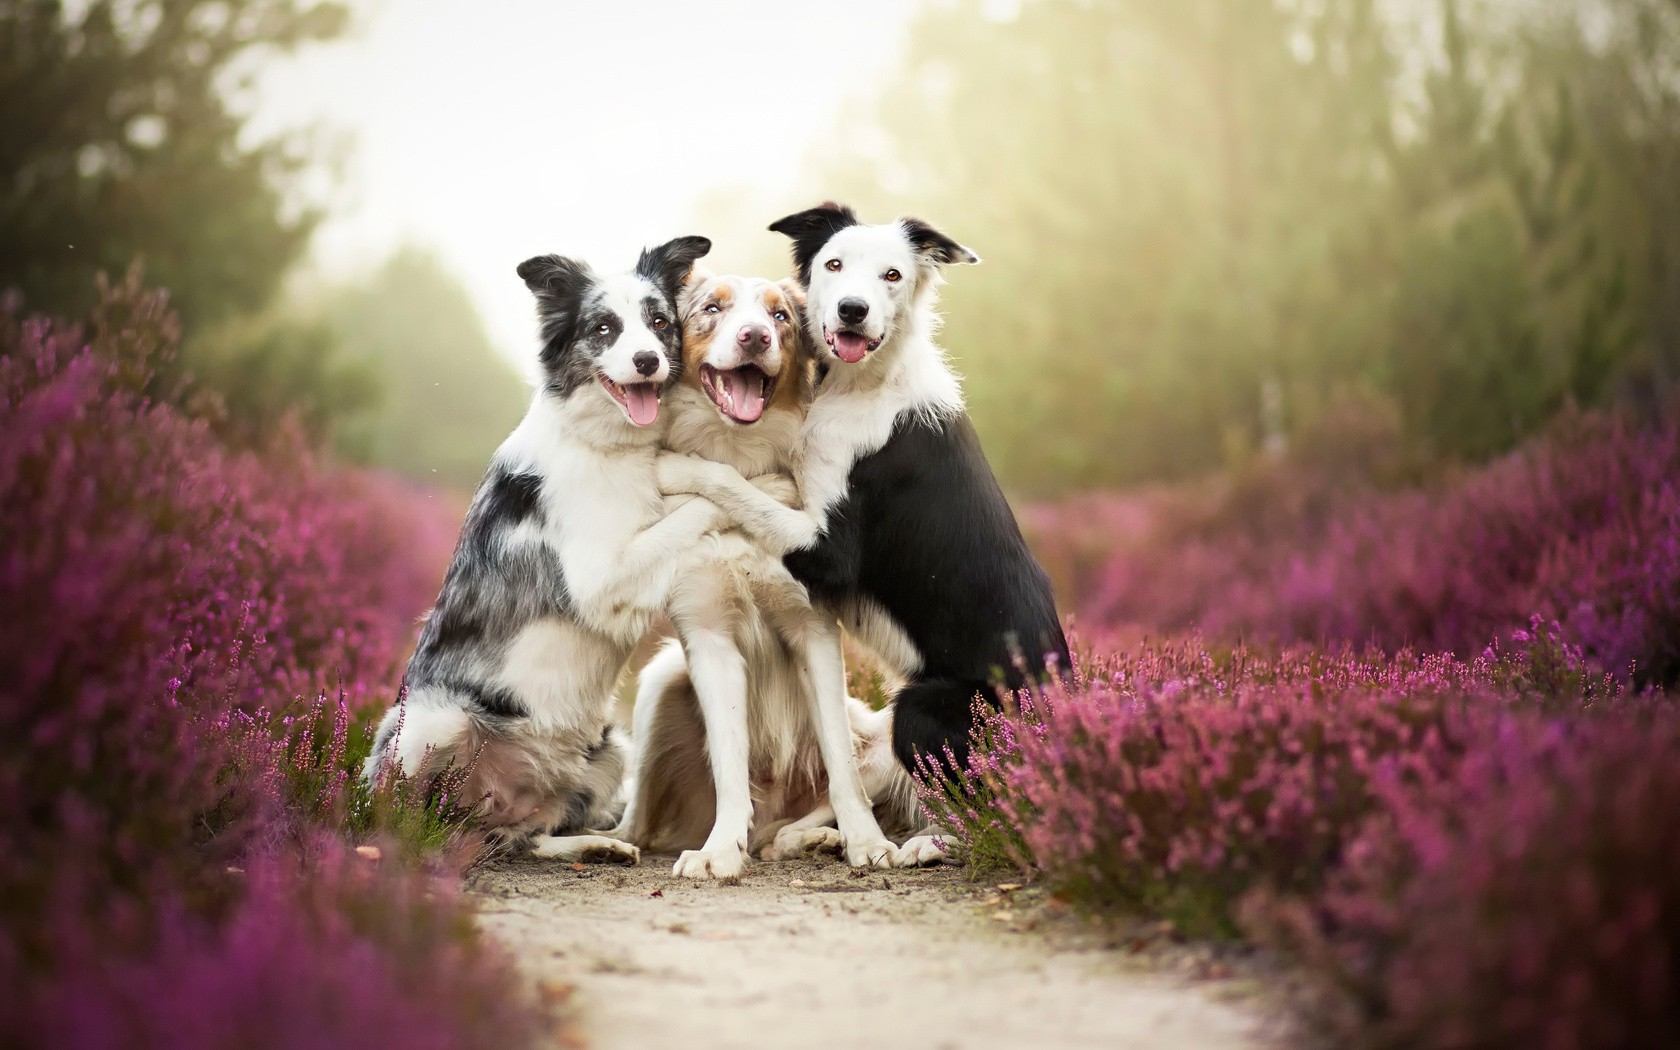 Happy Fall Wallpaper 1366x768 Dog Border Collie Animals Nature Depth Of Field Path